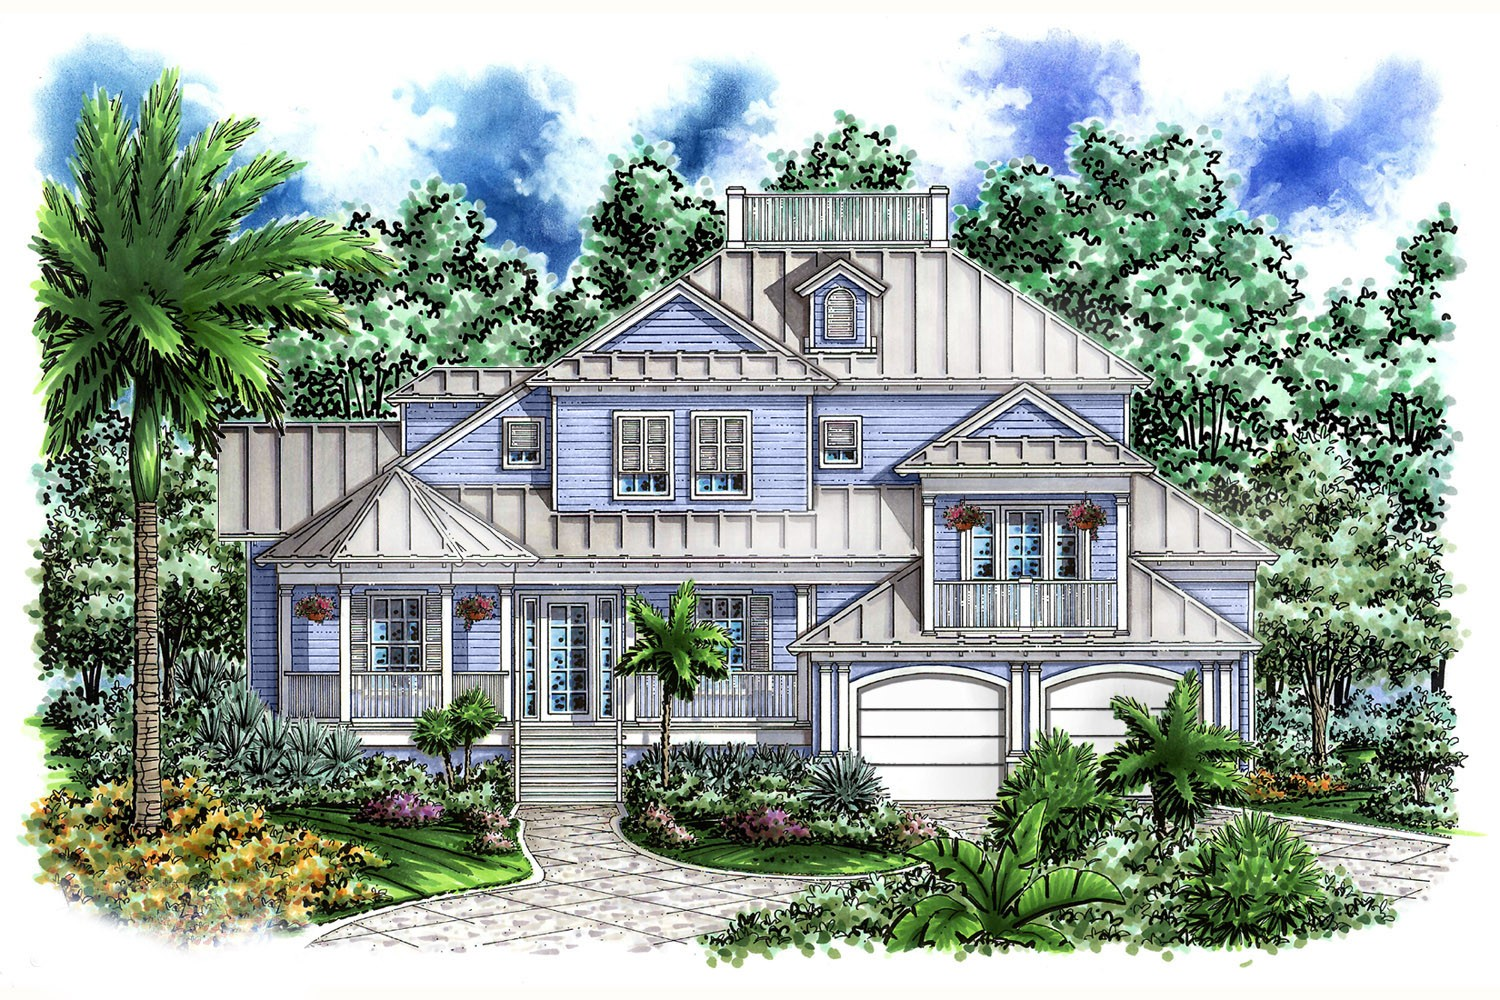 Unique Old Florida Design - 66204WE | Architectural ...